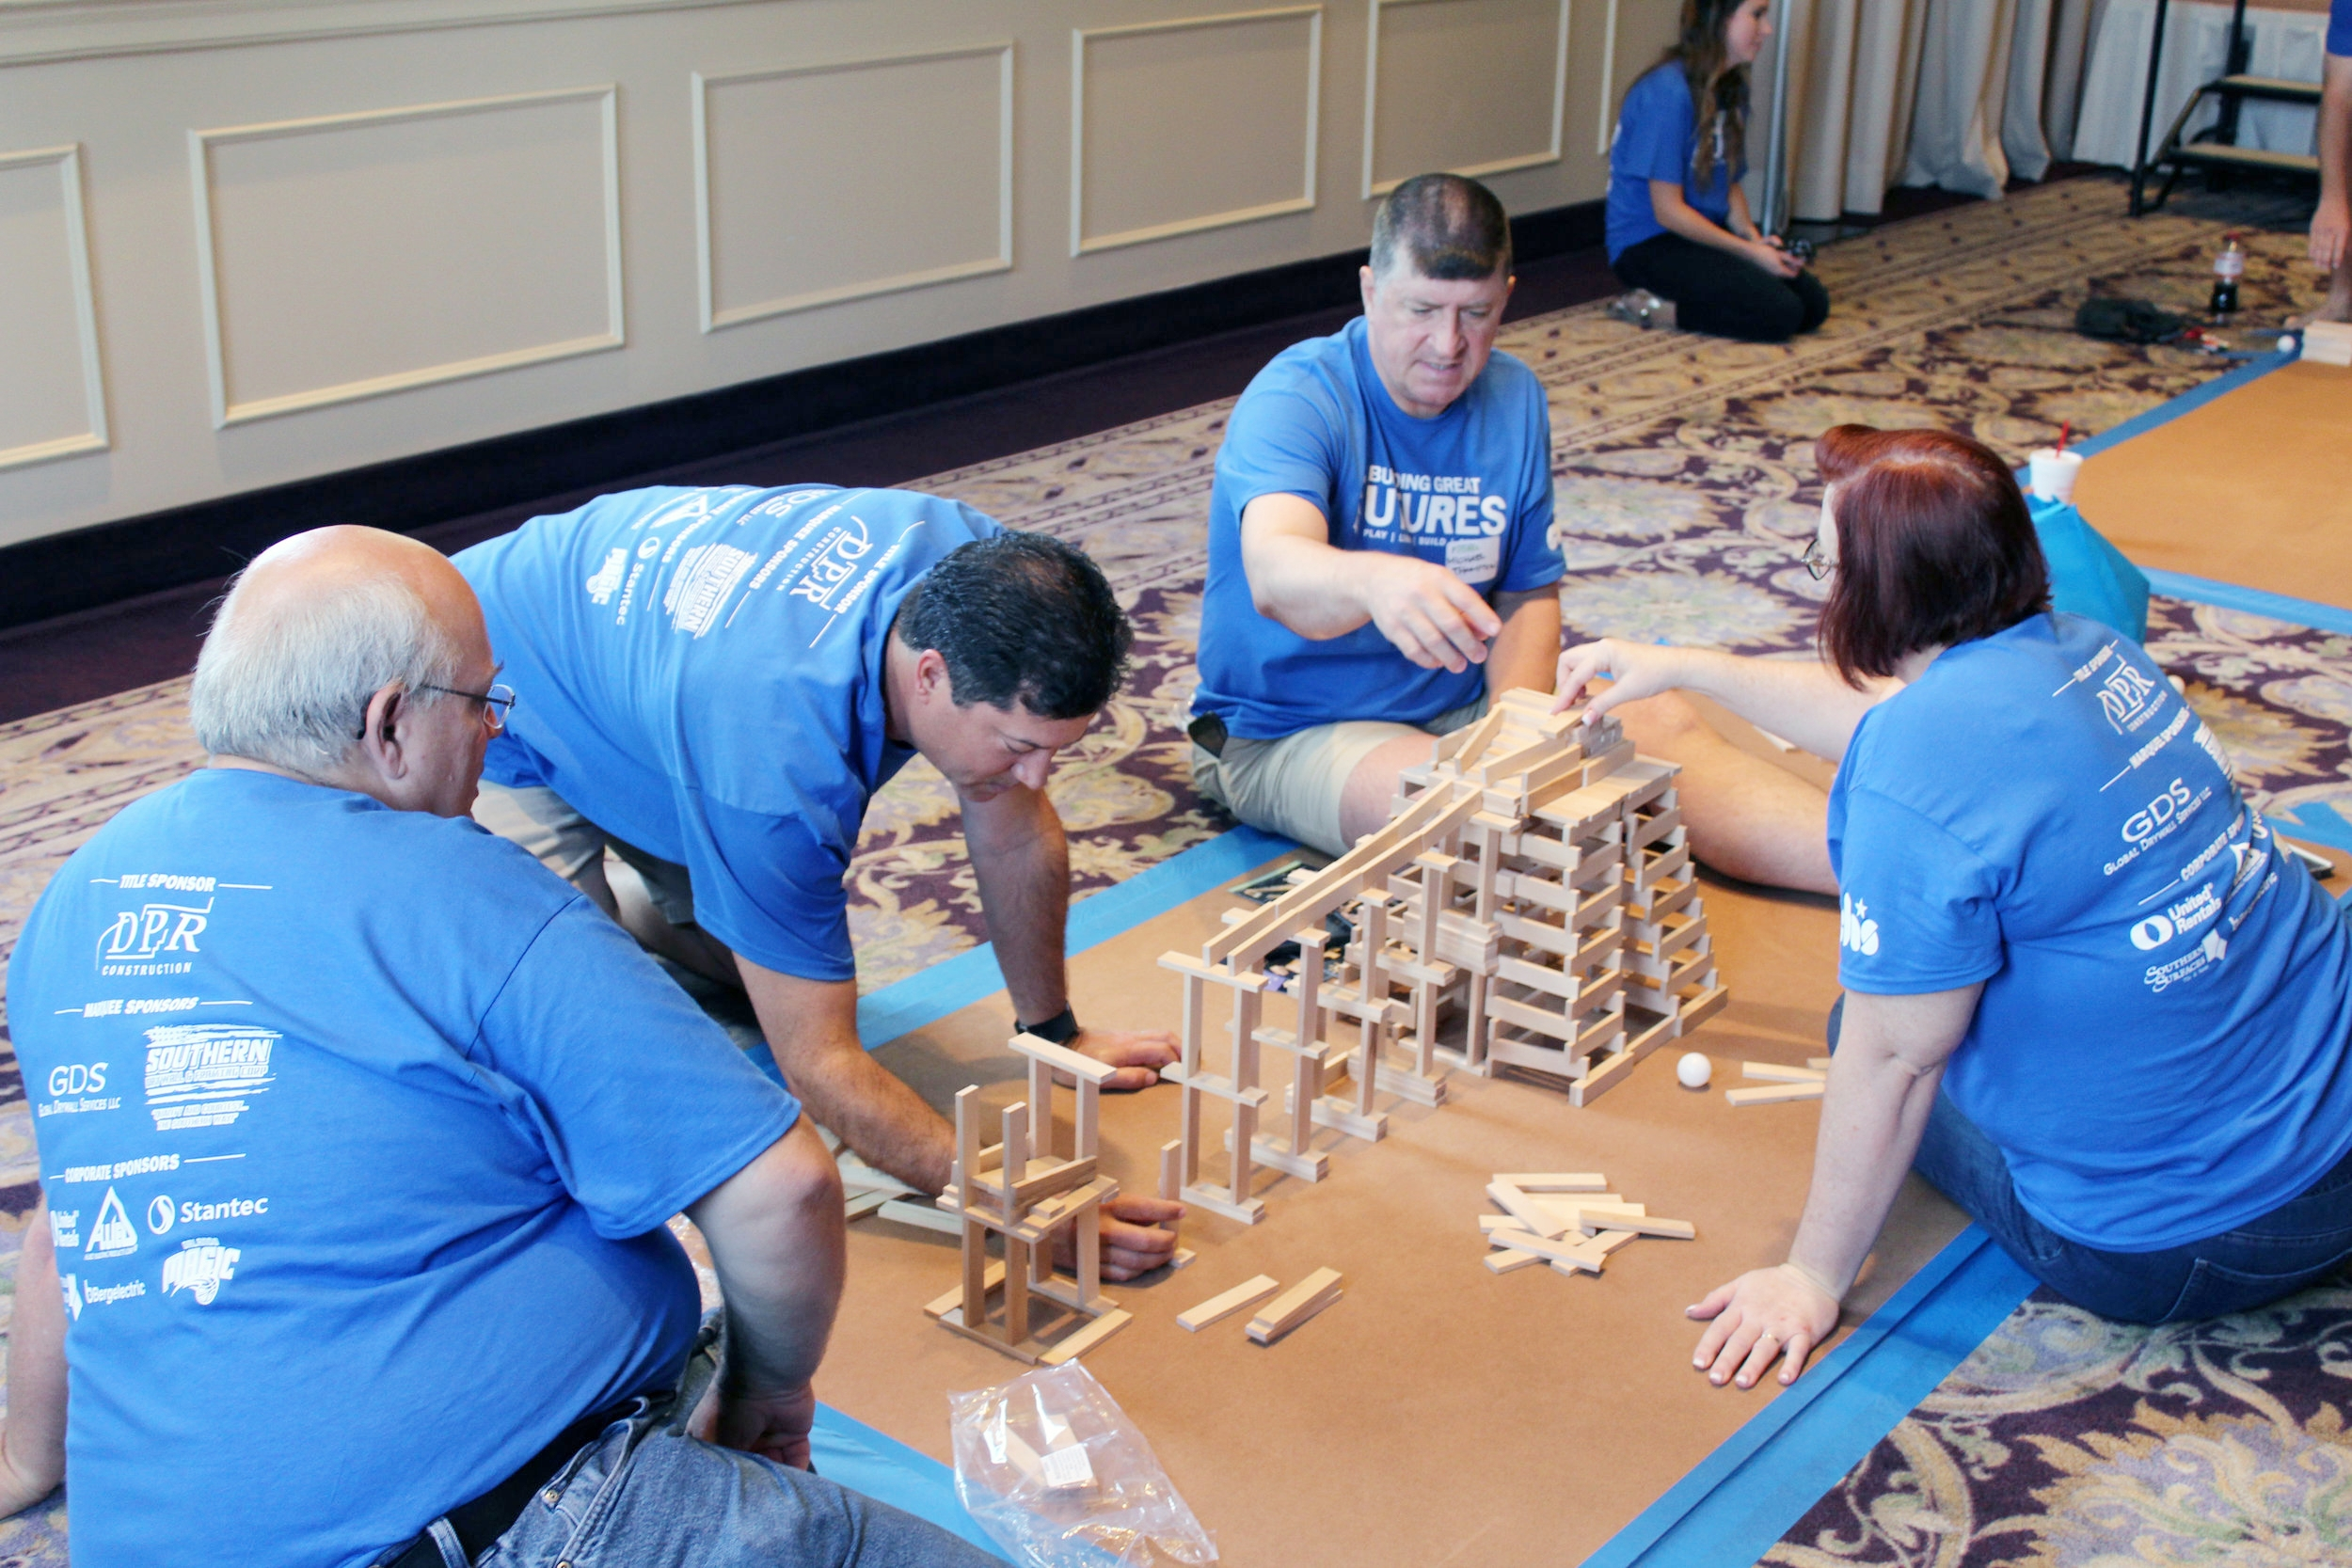 GRAB YOUR COWORKERS AND FAMILY TO JOIN DPR FOR OUR SIGNATURE CHARITy BUILD COMPETITION -